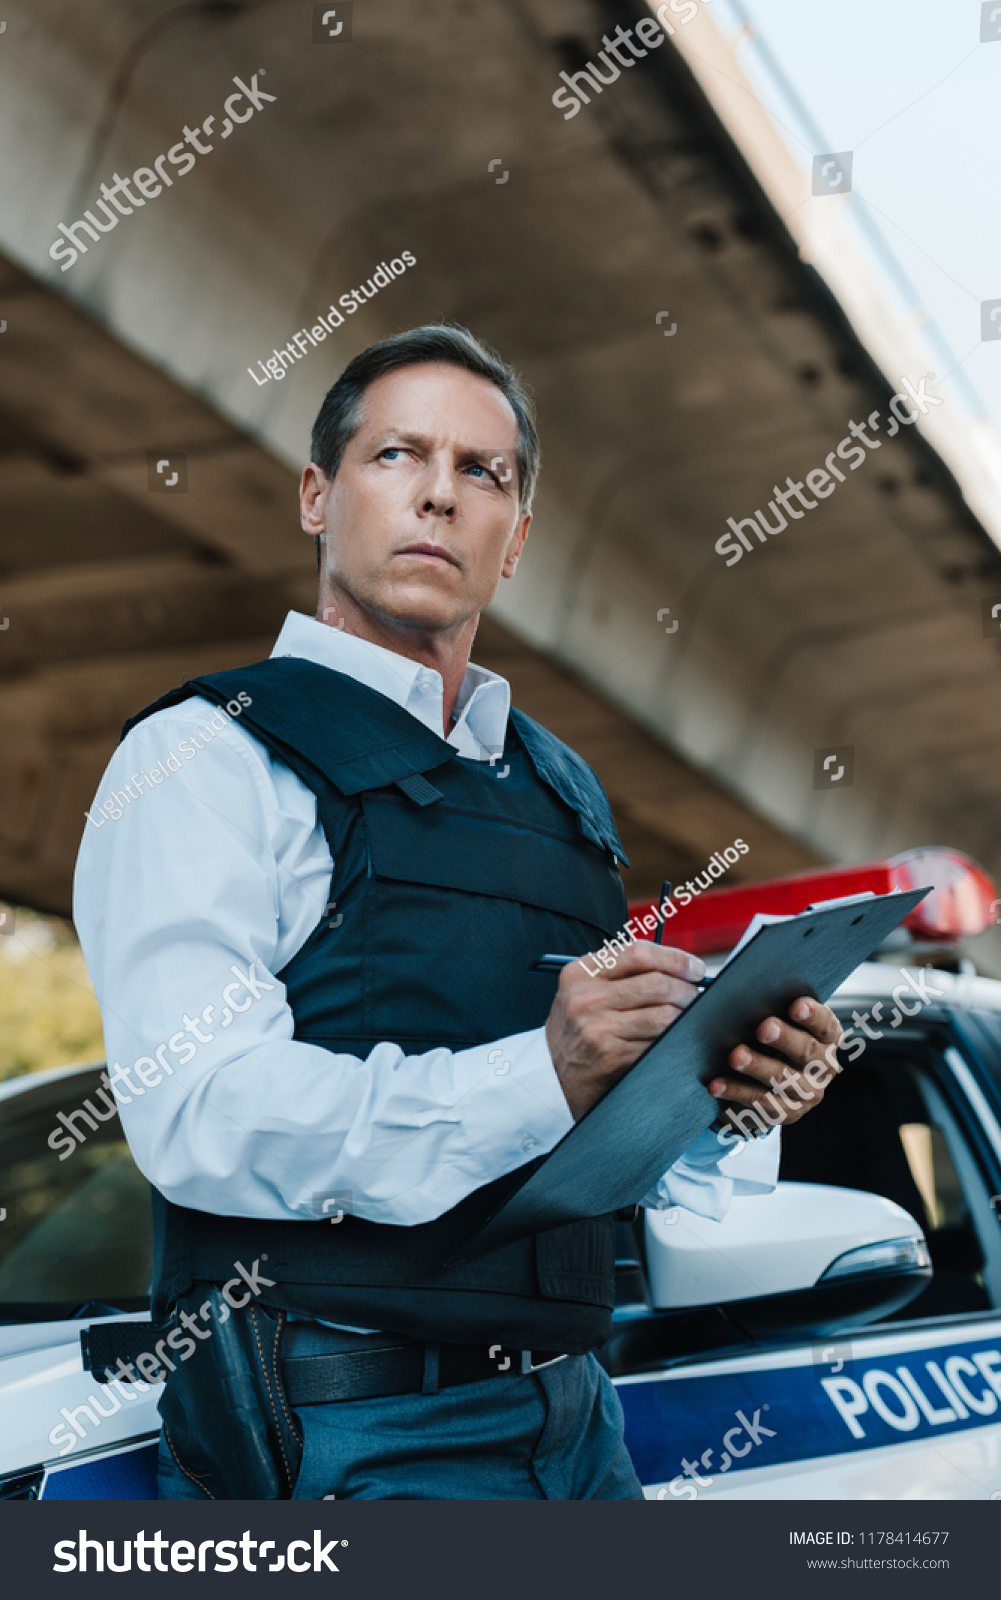 stock-photo-low-angle-view-of-middle-aged-male-police-officer-in-bulletproof-vest-writing-in-clipboard-near-car-1178414677